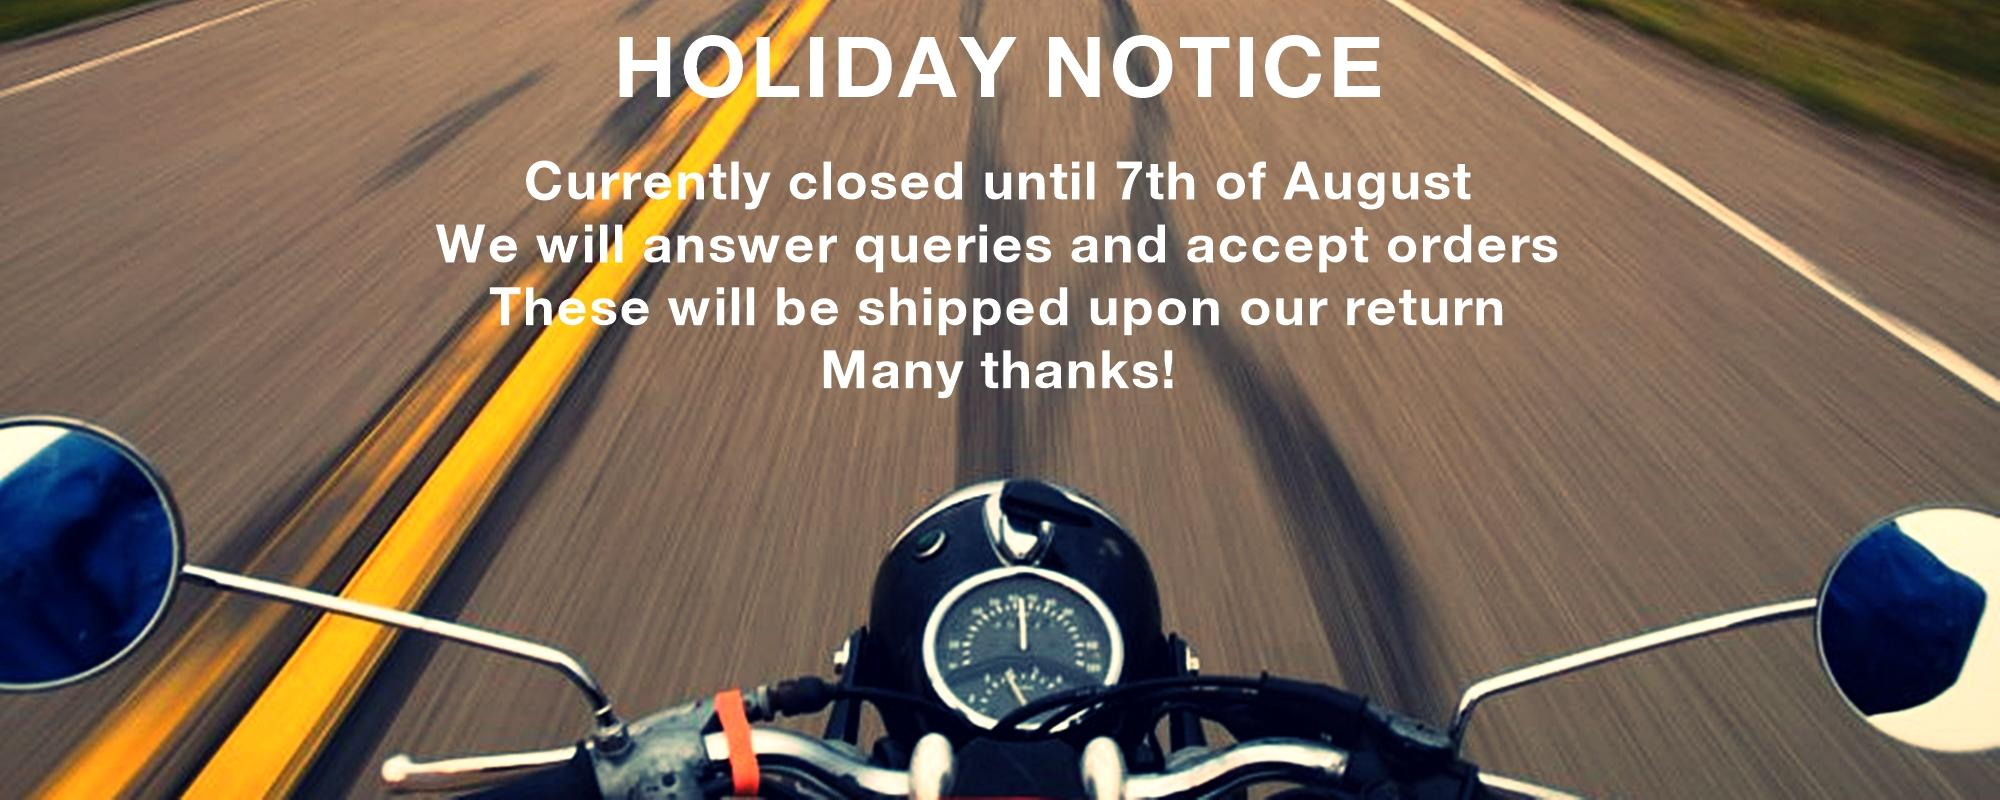 FlatRacer - BMW Airhead Boxer & K series Parts & Accessories Specialist - Holiday Notice 2020